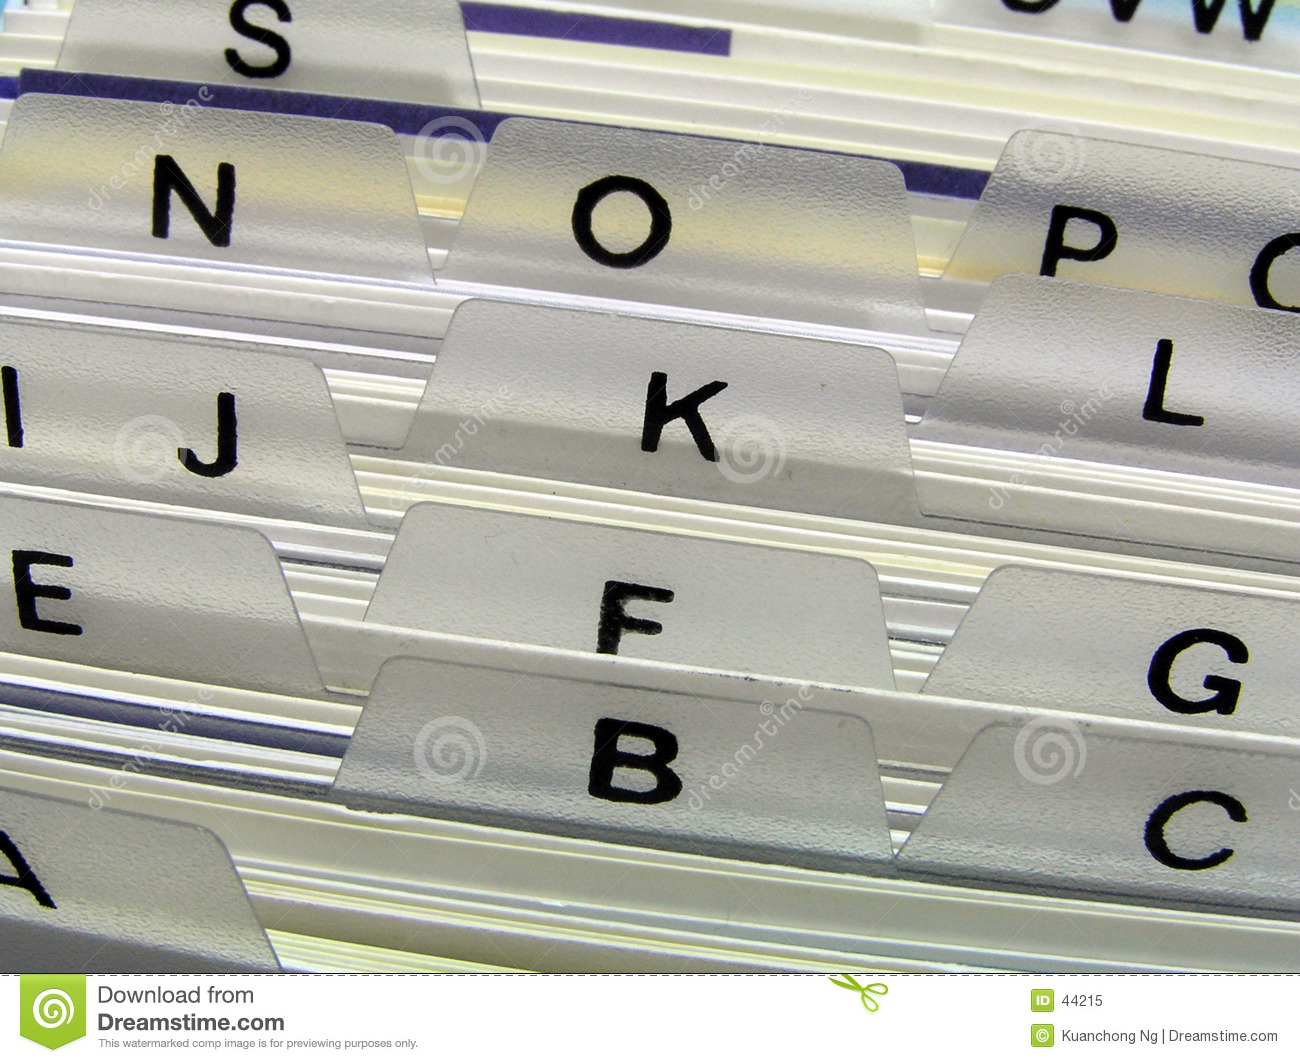 Download Business Card holder stock image. Image of search, partner - 44215